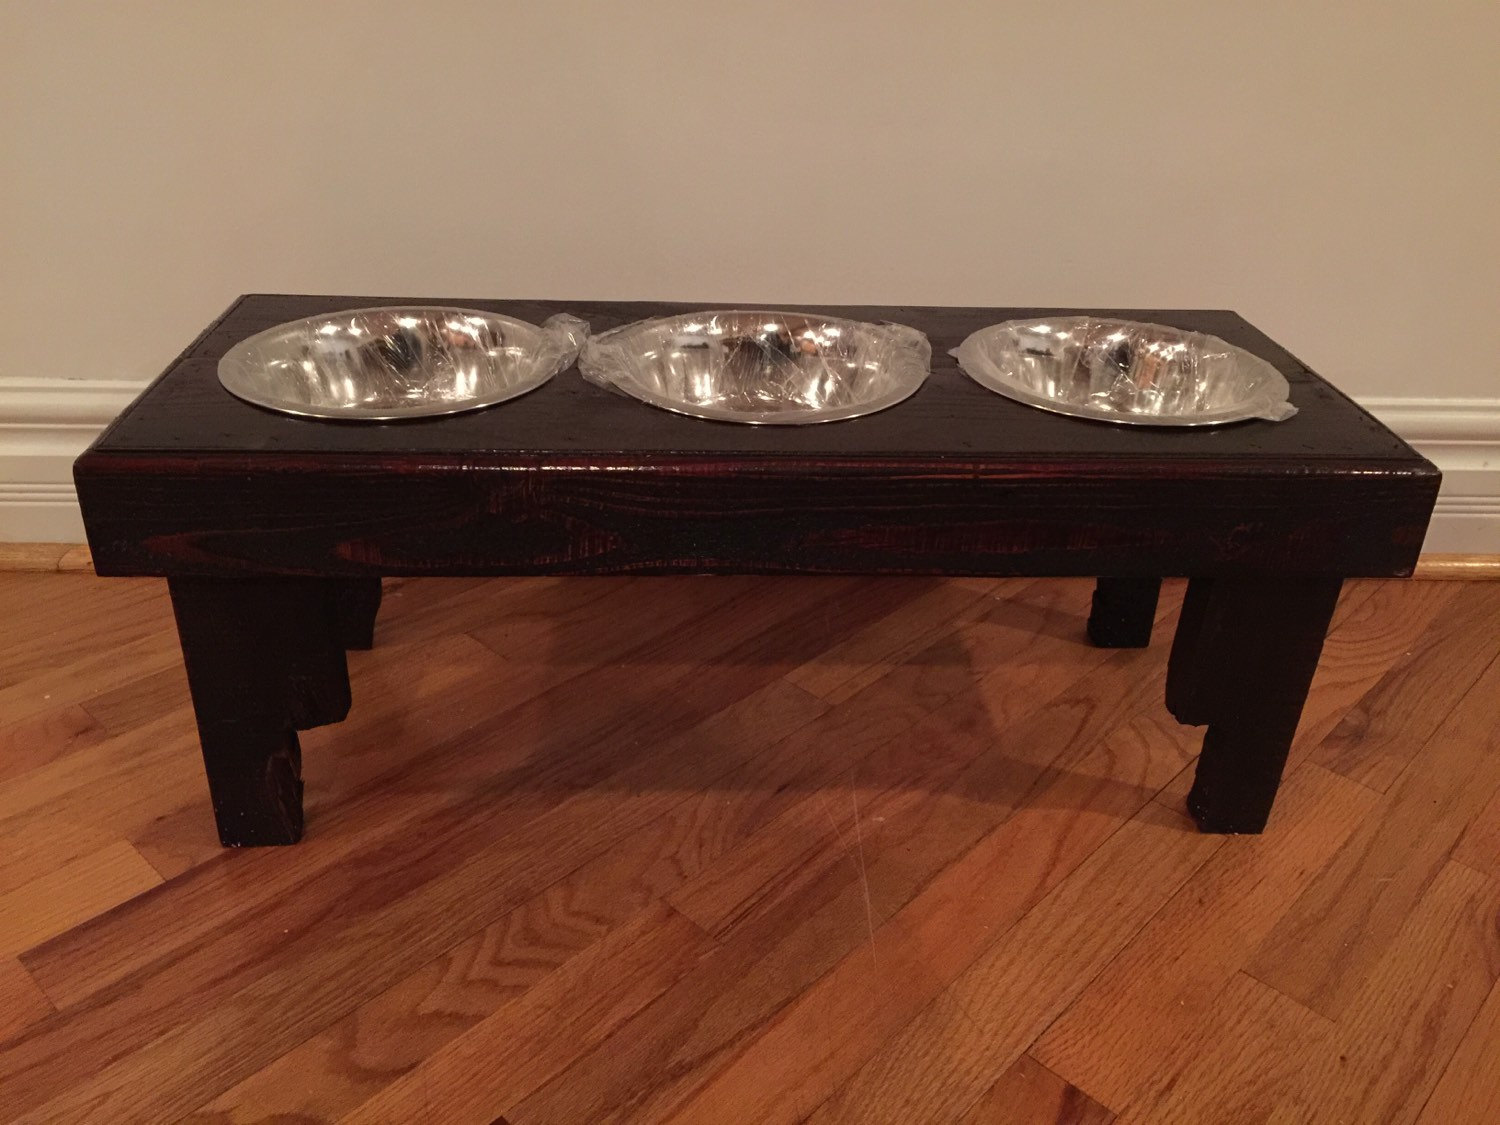 Fullsize Of Dog Bowl Stand